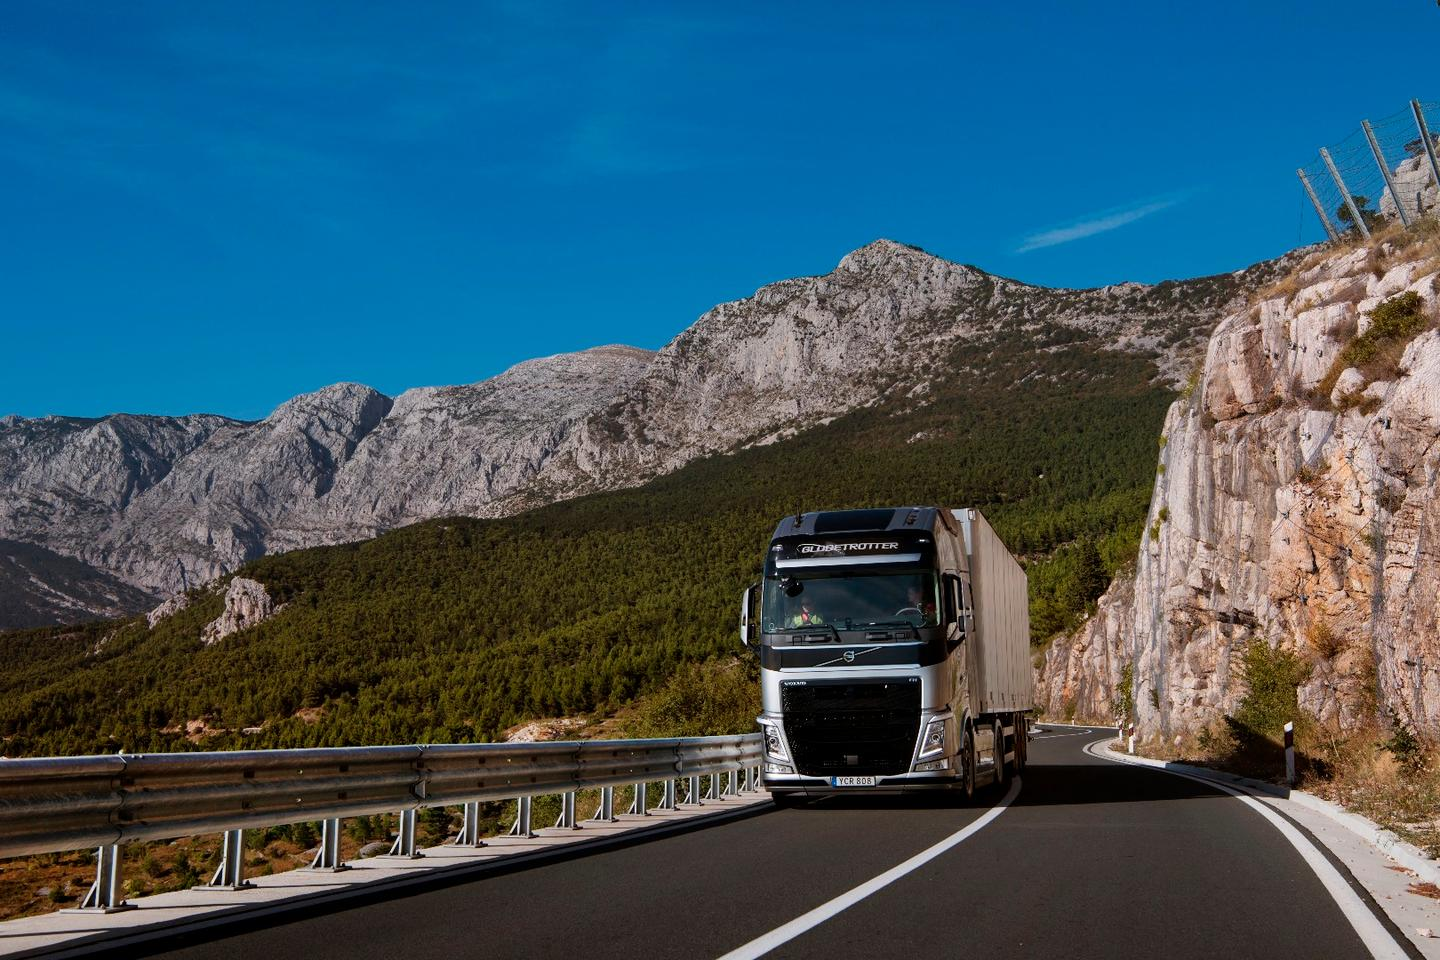 The Volvo truck used in the test makes its way up a Croatian mountain pass